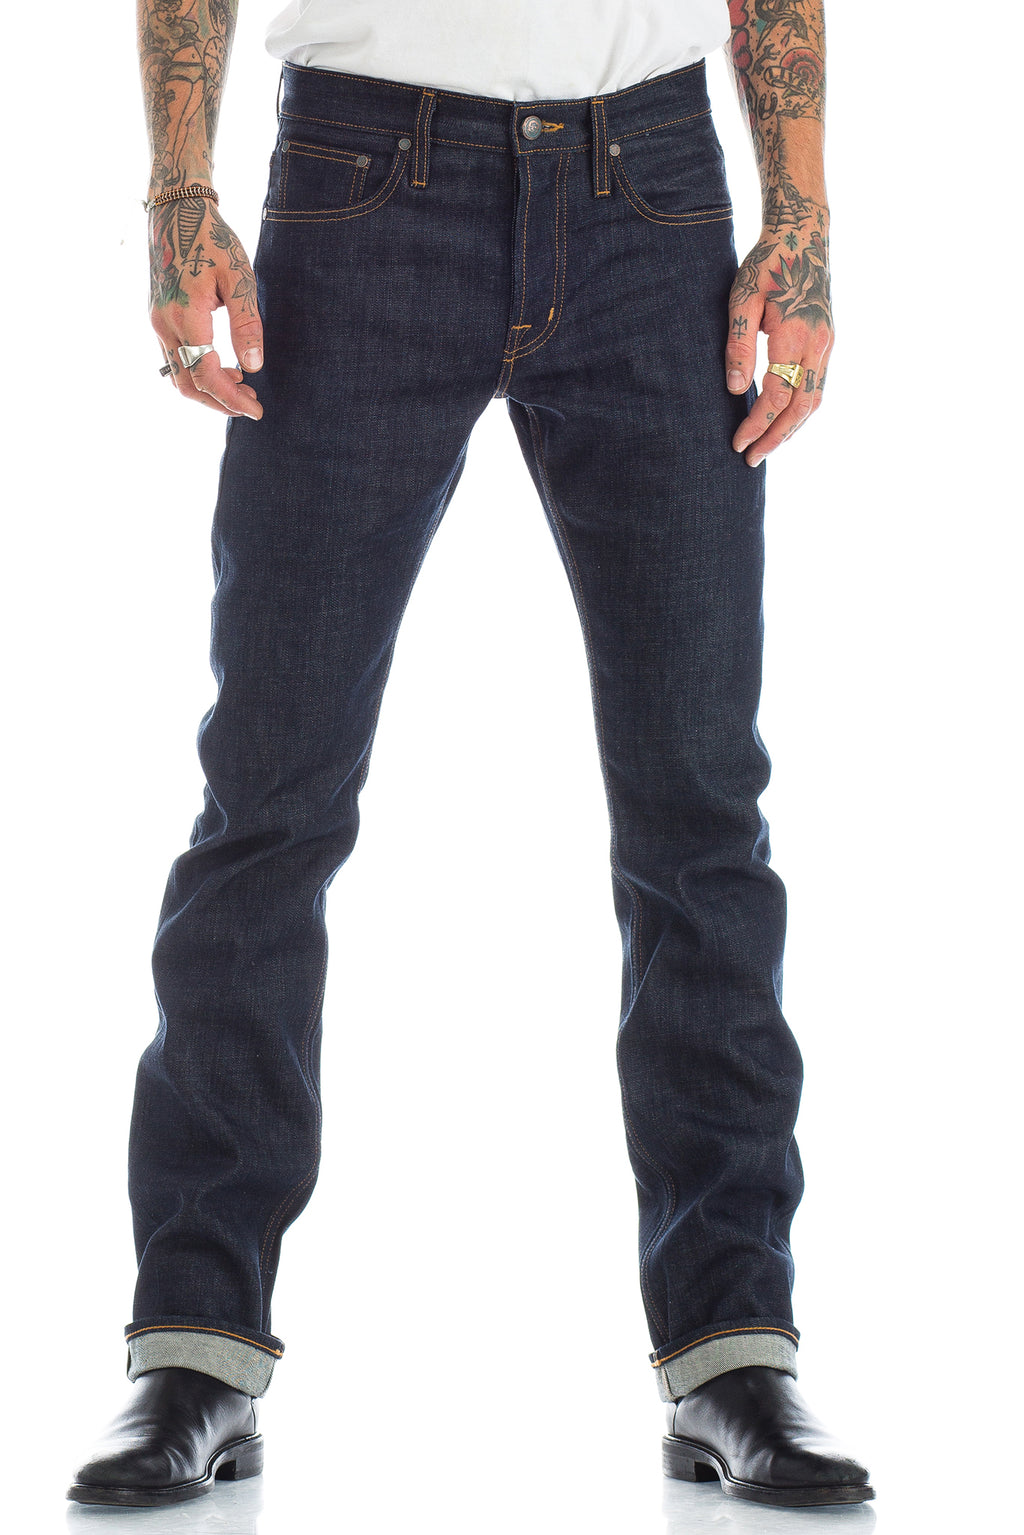 The perfect raw medium slim fit indigo jean. Asbury Park crafts traditional 5-Pocket American Made Denim with an emphasis on comfort, fit and old-world craftsmanship. The creative grit, the 'anything goes' mentality, the rock and roll lifestyle are all elements breathed into every piece of the collection.